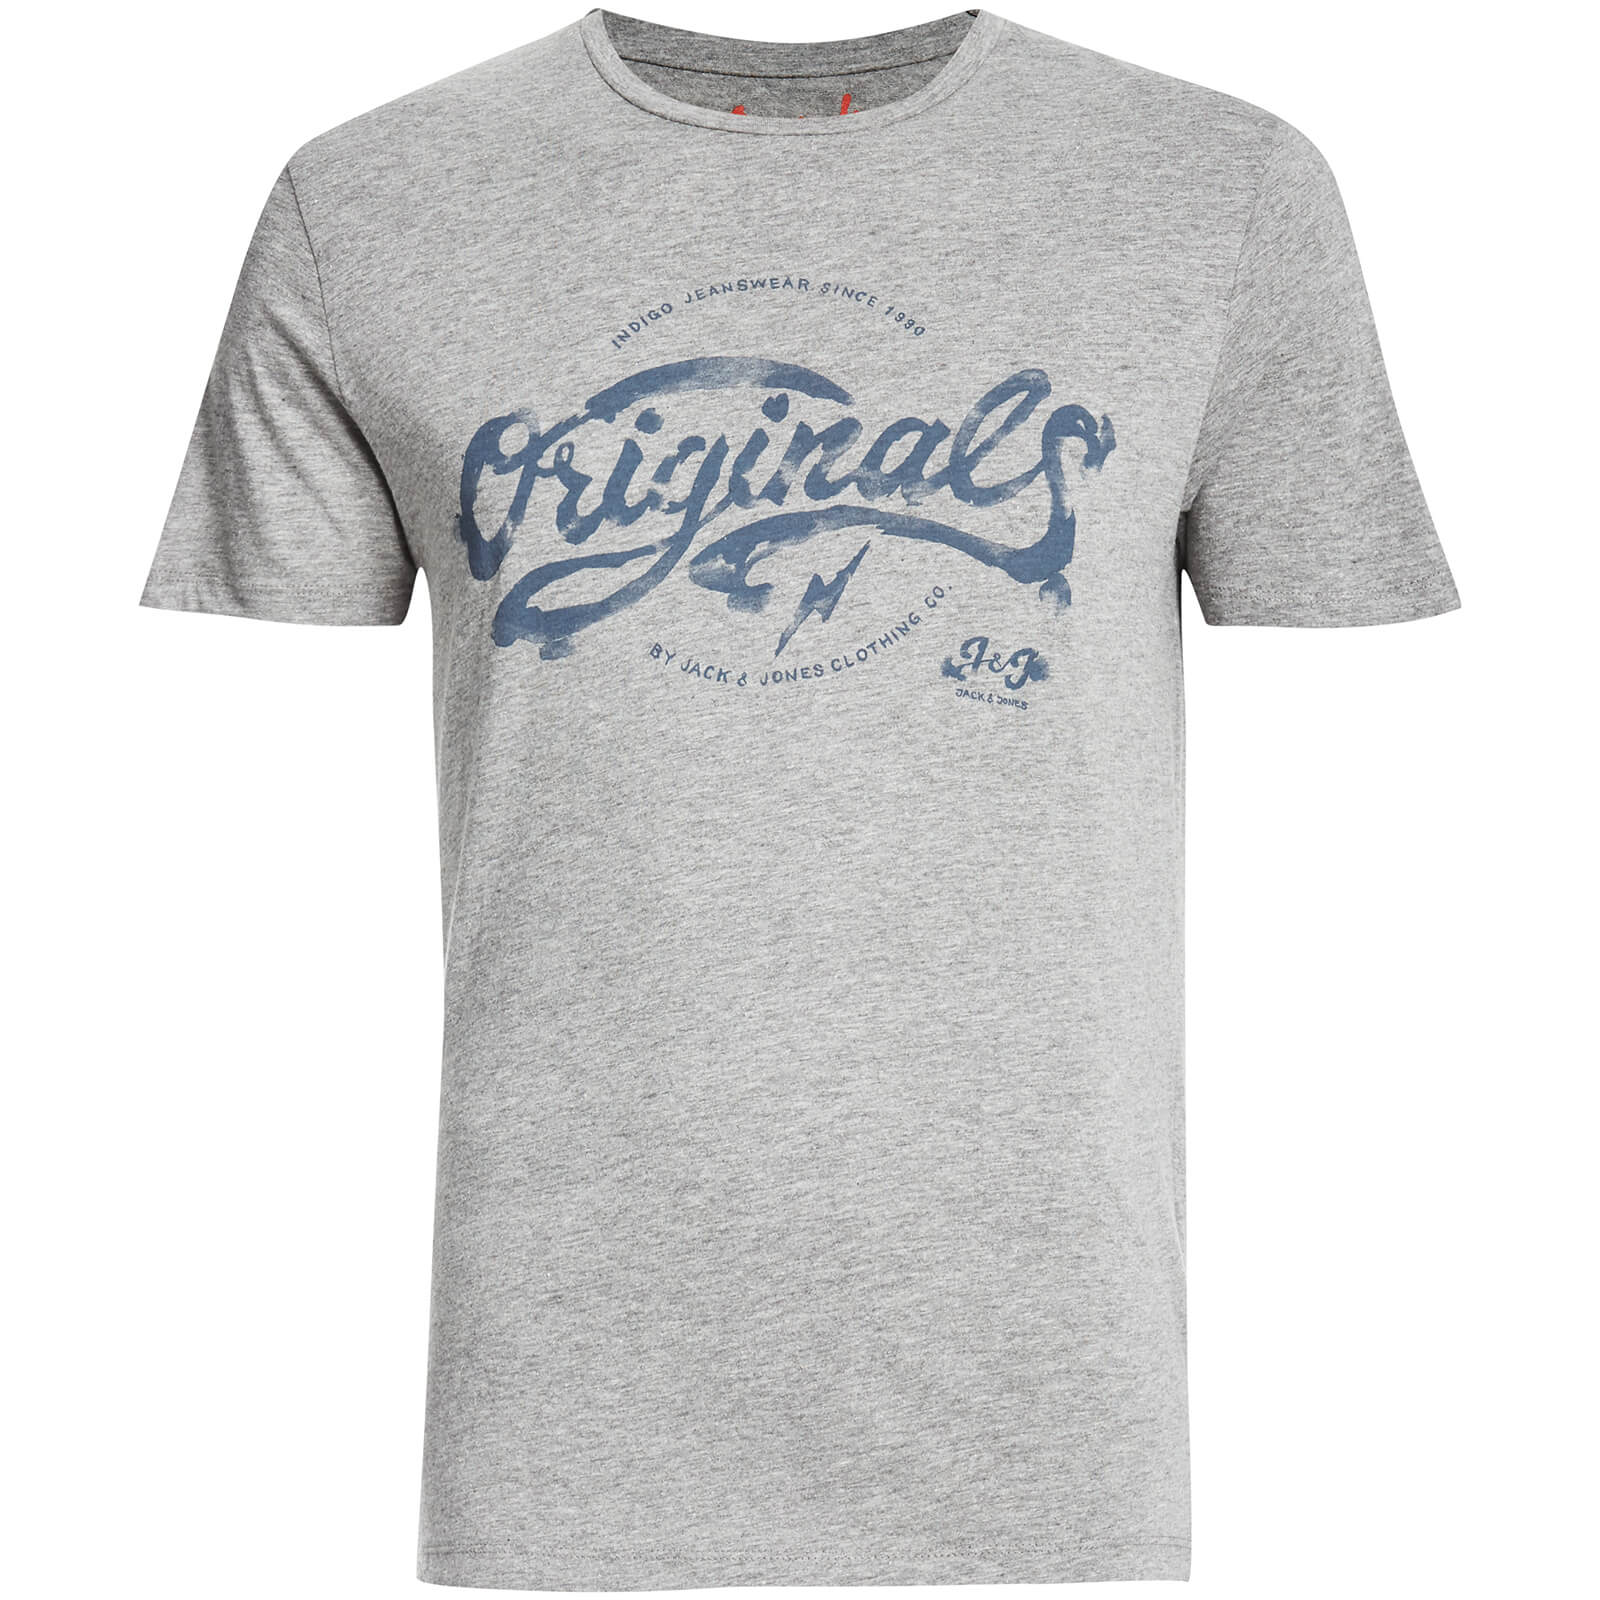 T-Shirt Homme Originals Miller Jack & Jones -Gris Clair